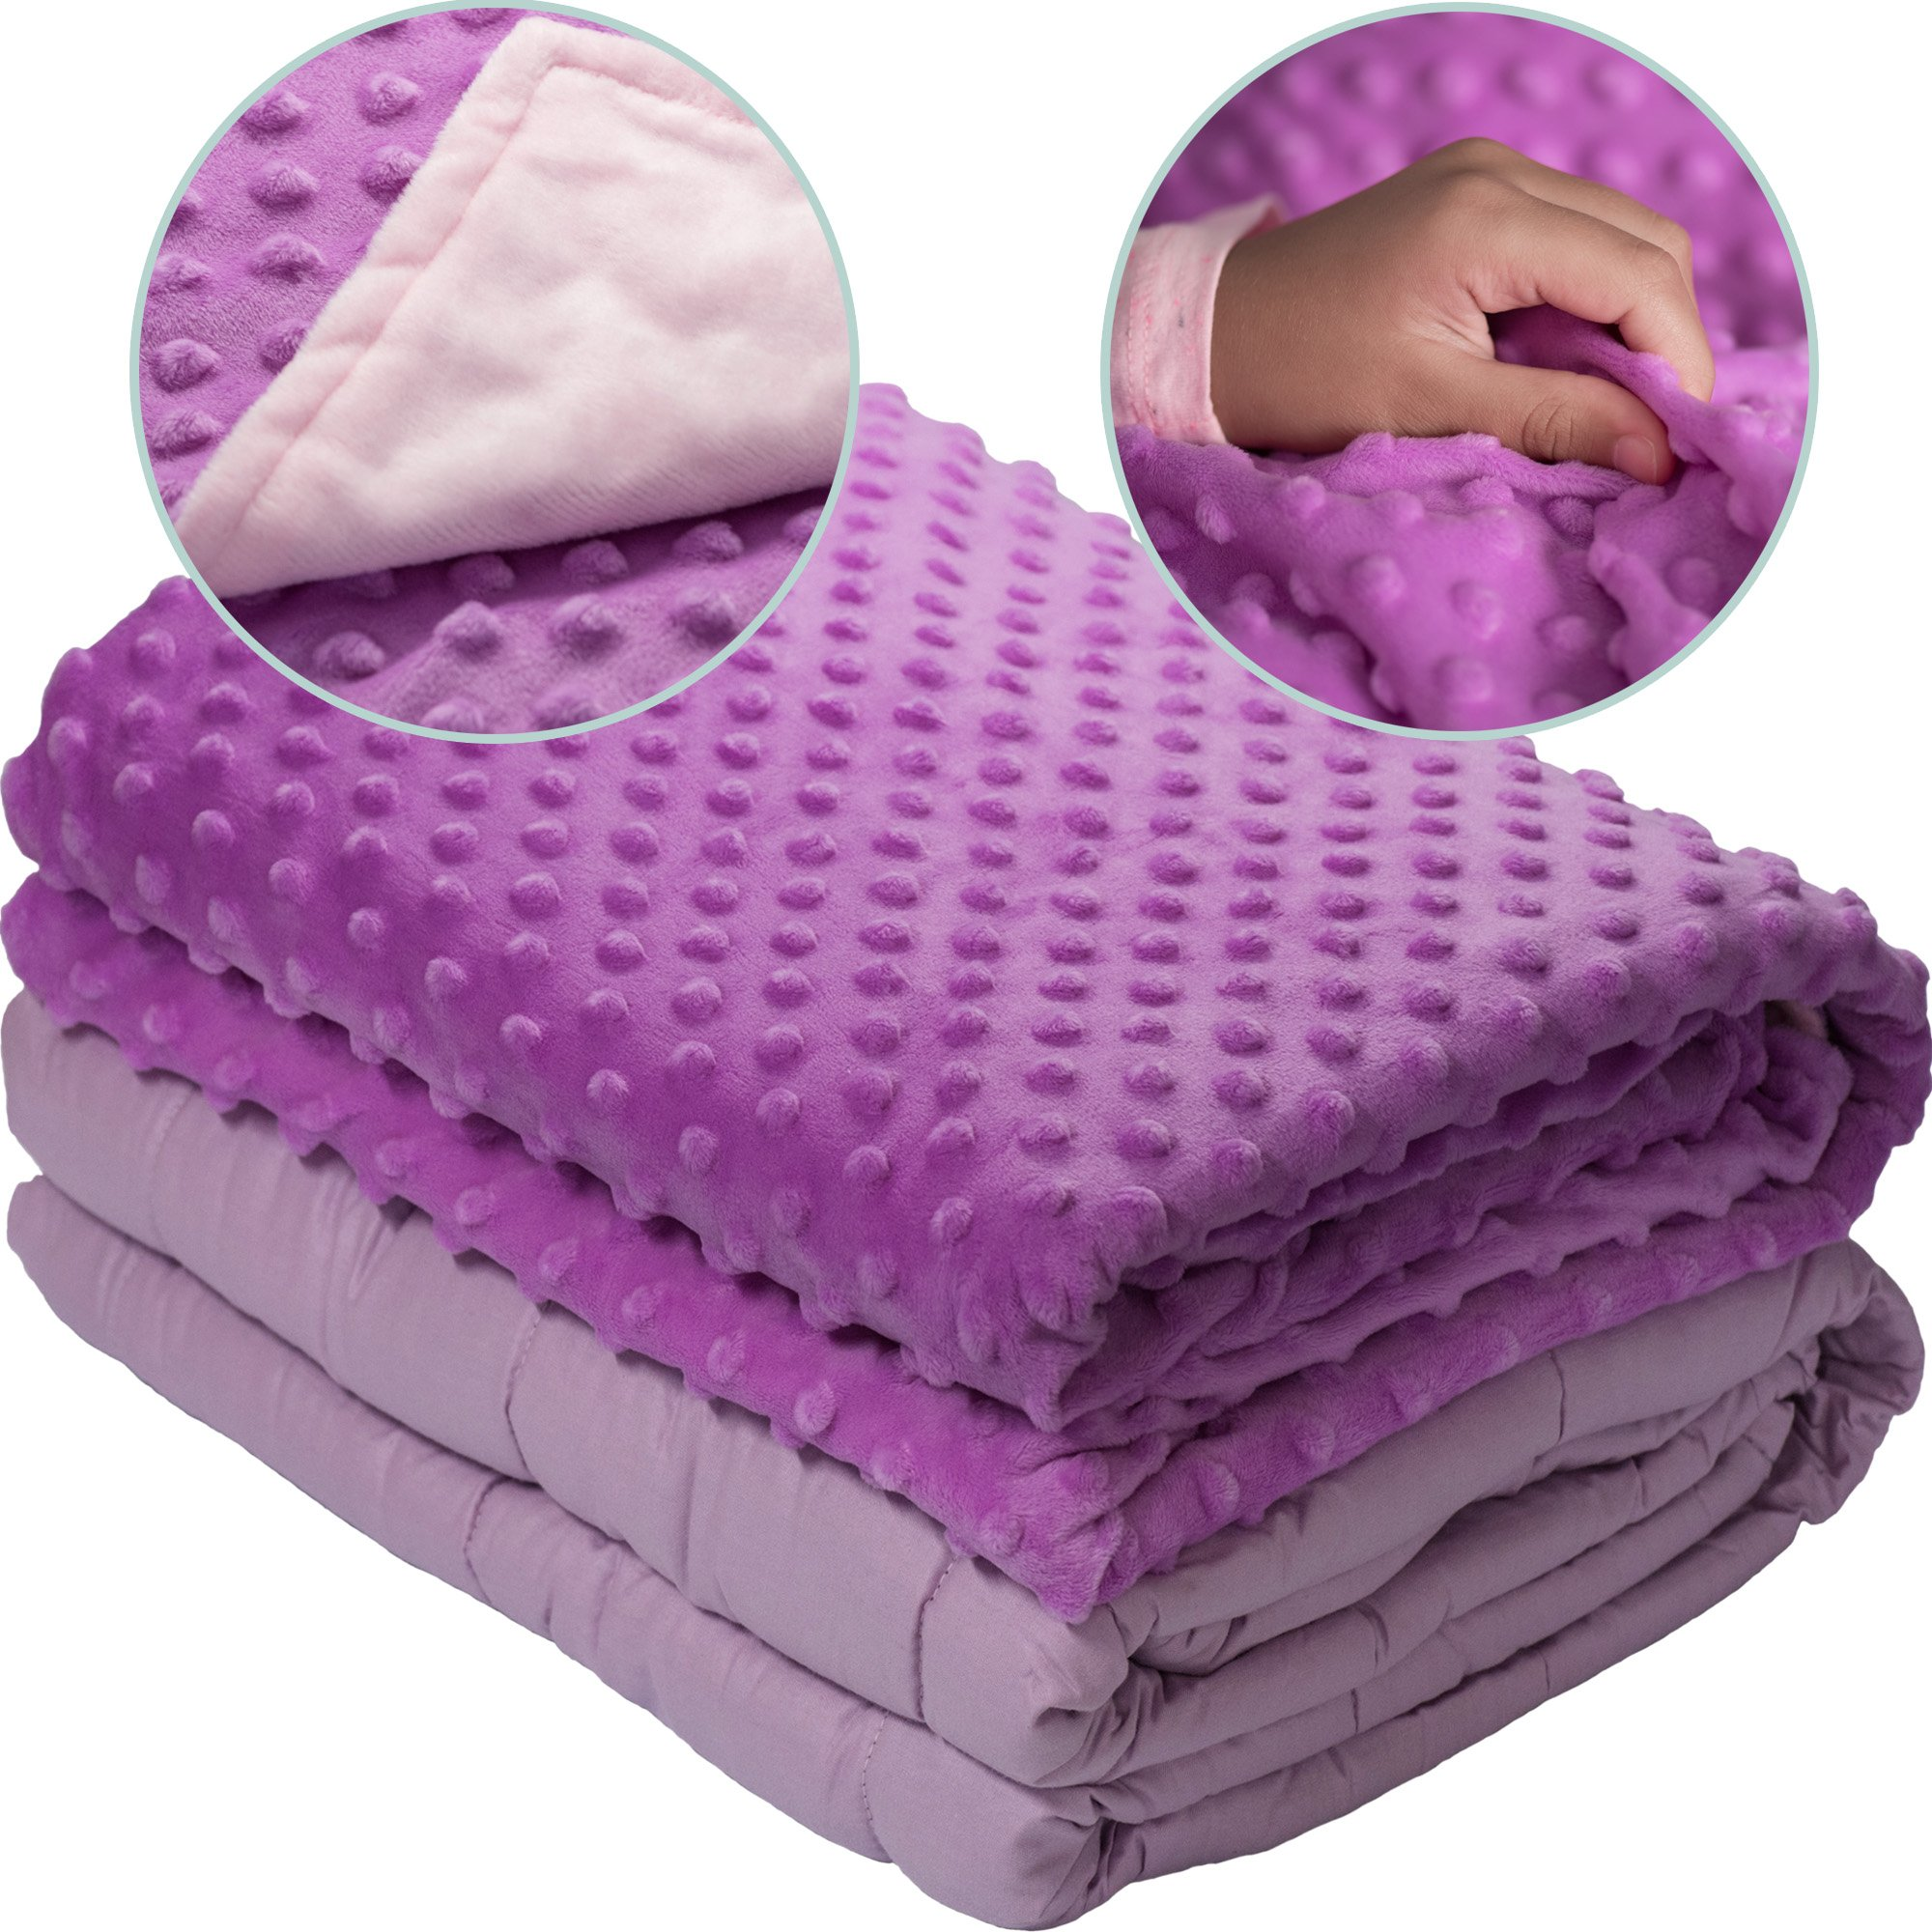 5lb Weighted Blanket with Dot Minky Cover for Kids 40-60lb Individual.Help Children with Sleep Issues Anxiety Stress Insomnia (Inner Light Violet/Cover Violet & Pink, 36''x48'' 5 lbs) by Loved Blanket (Image #3)